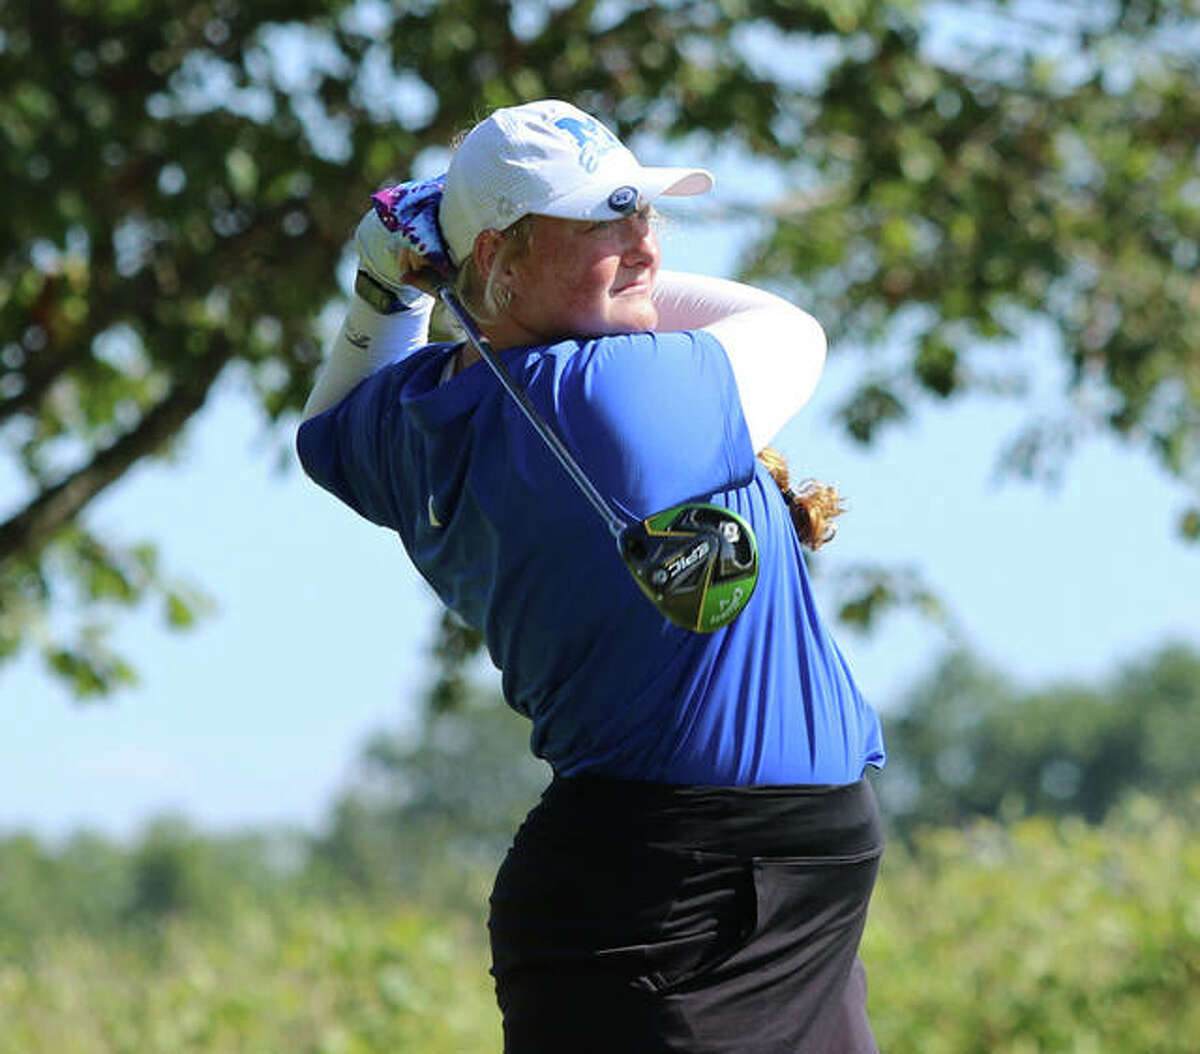 Marquette Catholic's Gracie Piar watches her drive on hole No. 11 in Monday's Class 1A sectional at Acorns Golf Links in Waterloo. Piar shot 2-under par 70 to win the sectional by five strokes.